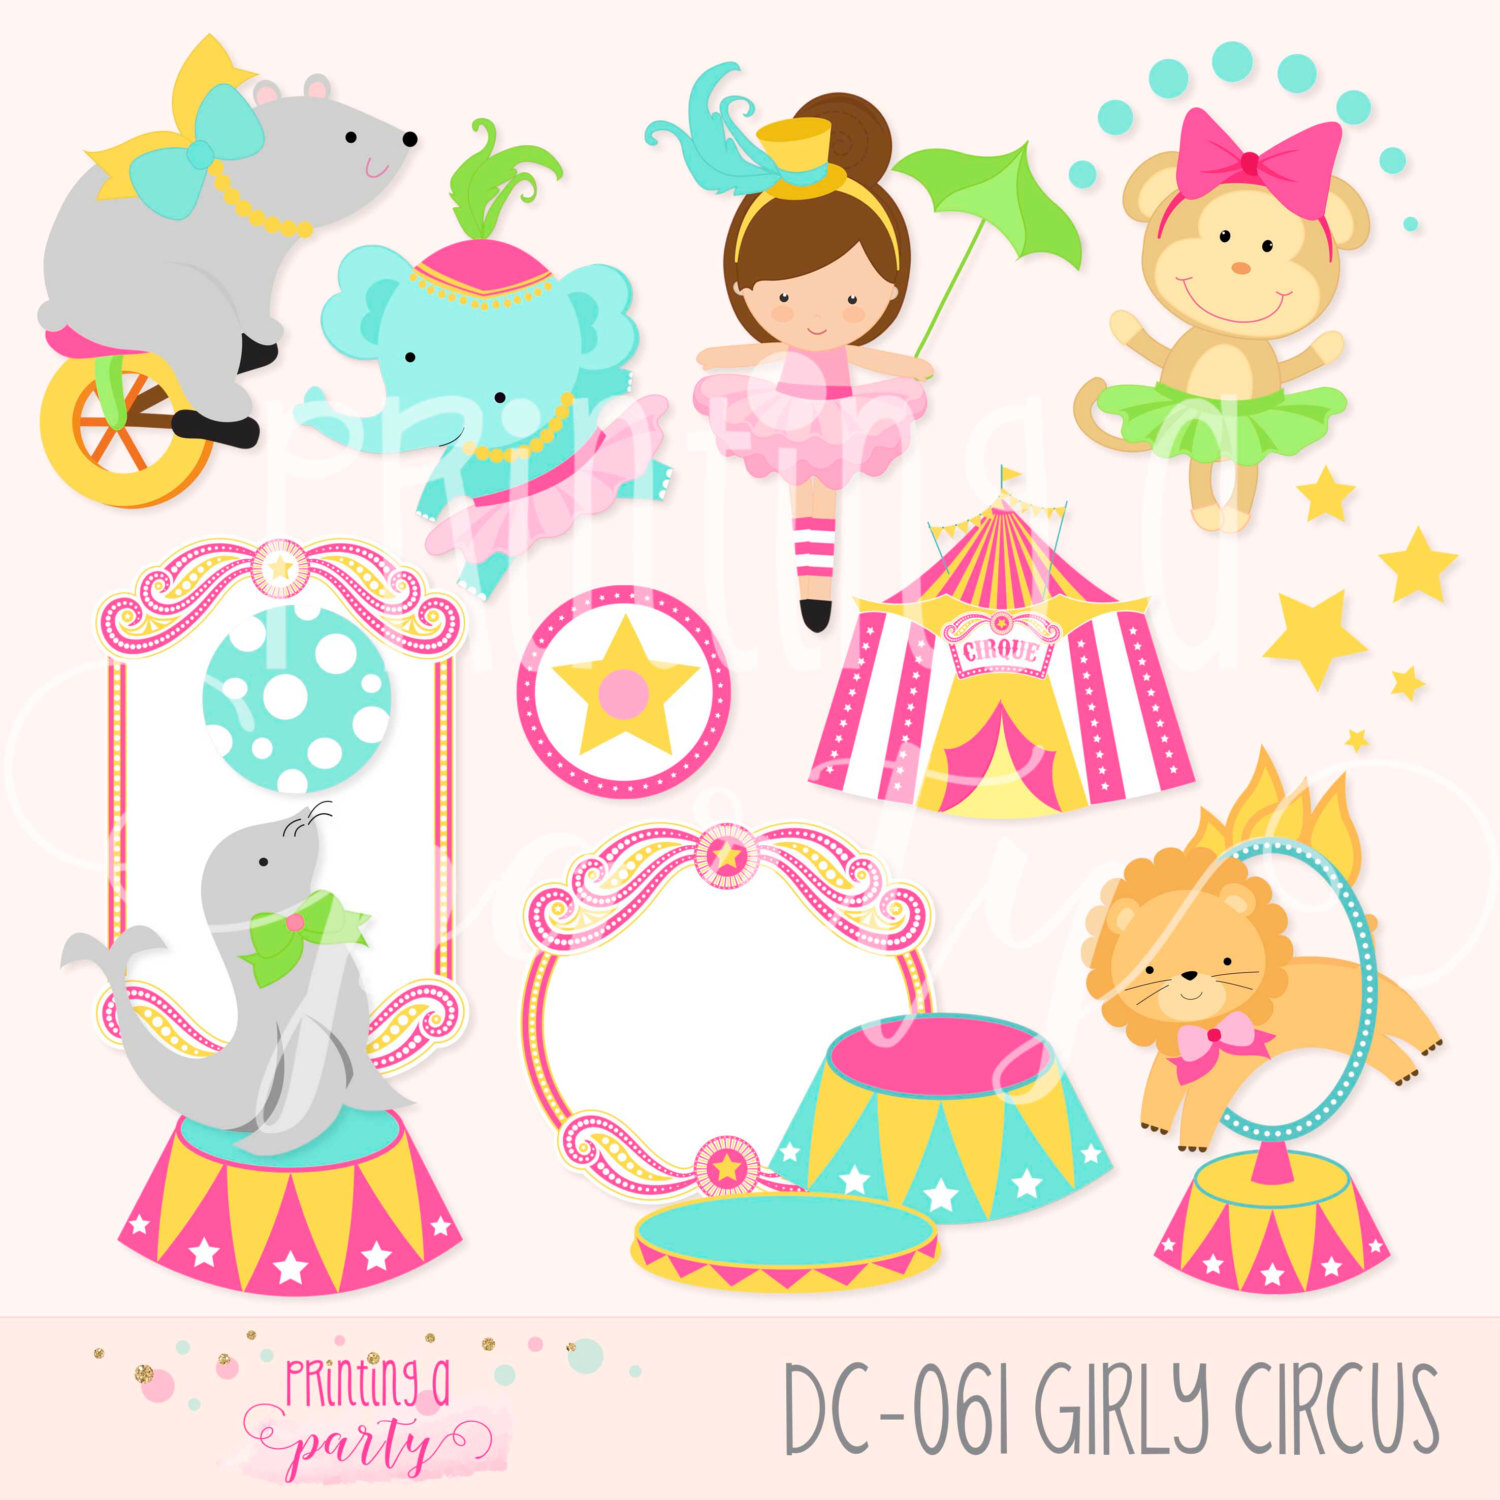 Circus Girl Animals Clipart Carnivale Party Girly Circus Clip Art.